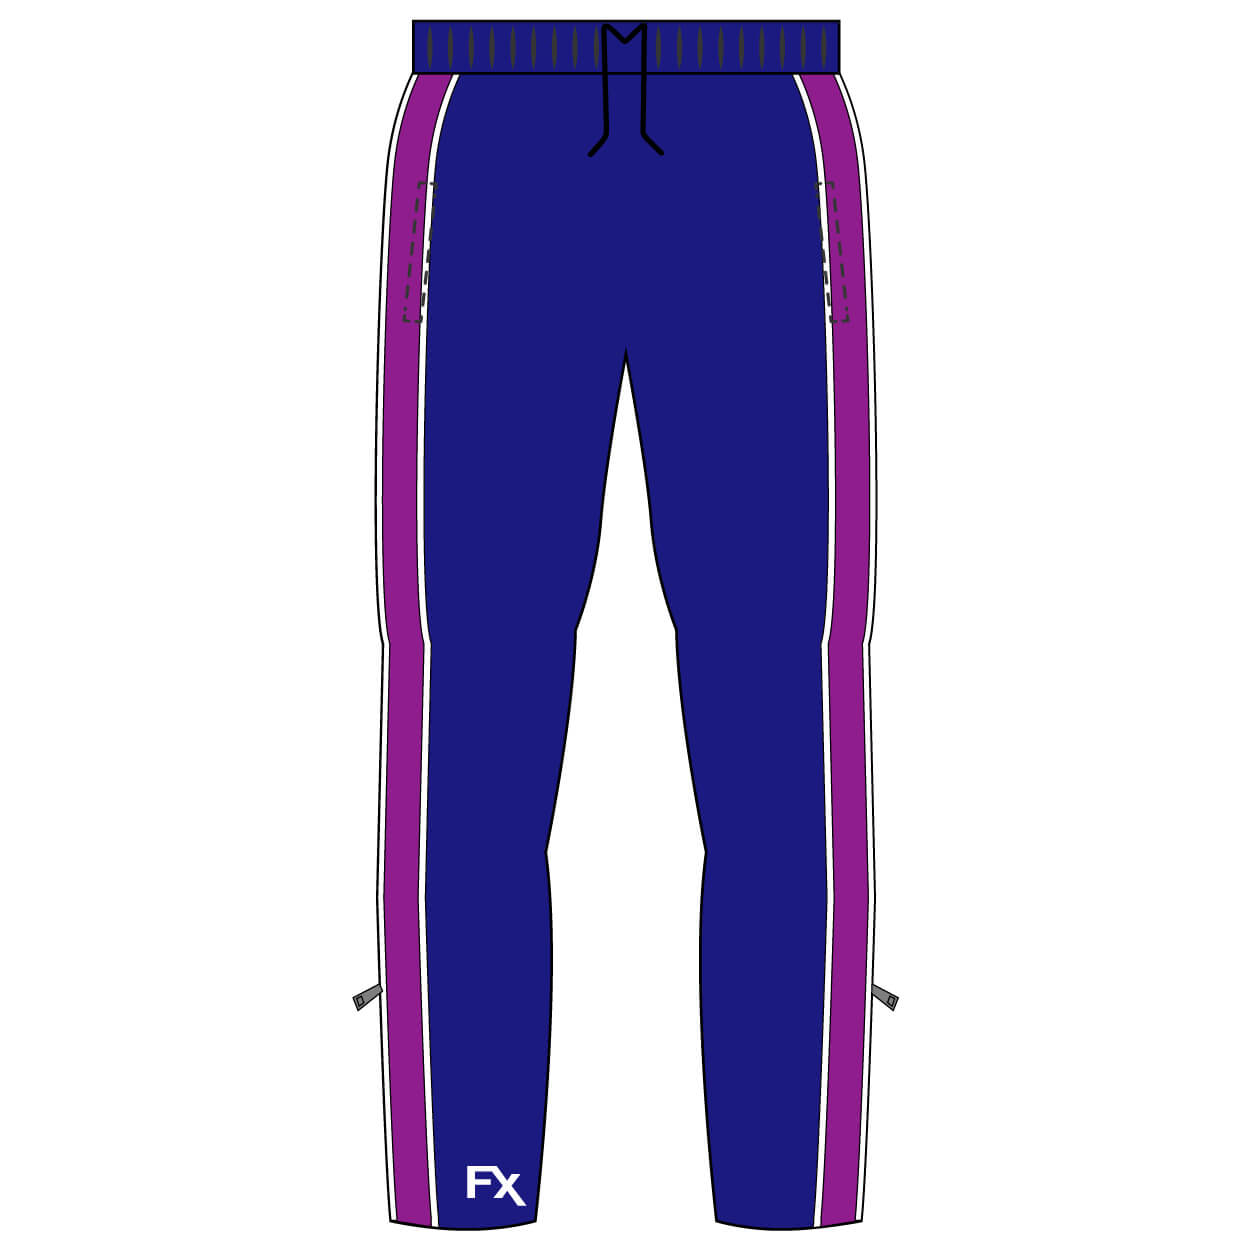 roundwood netball club_Tracksuit Bottoms